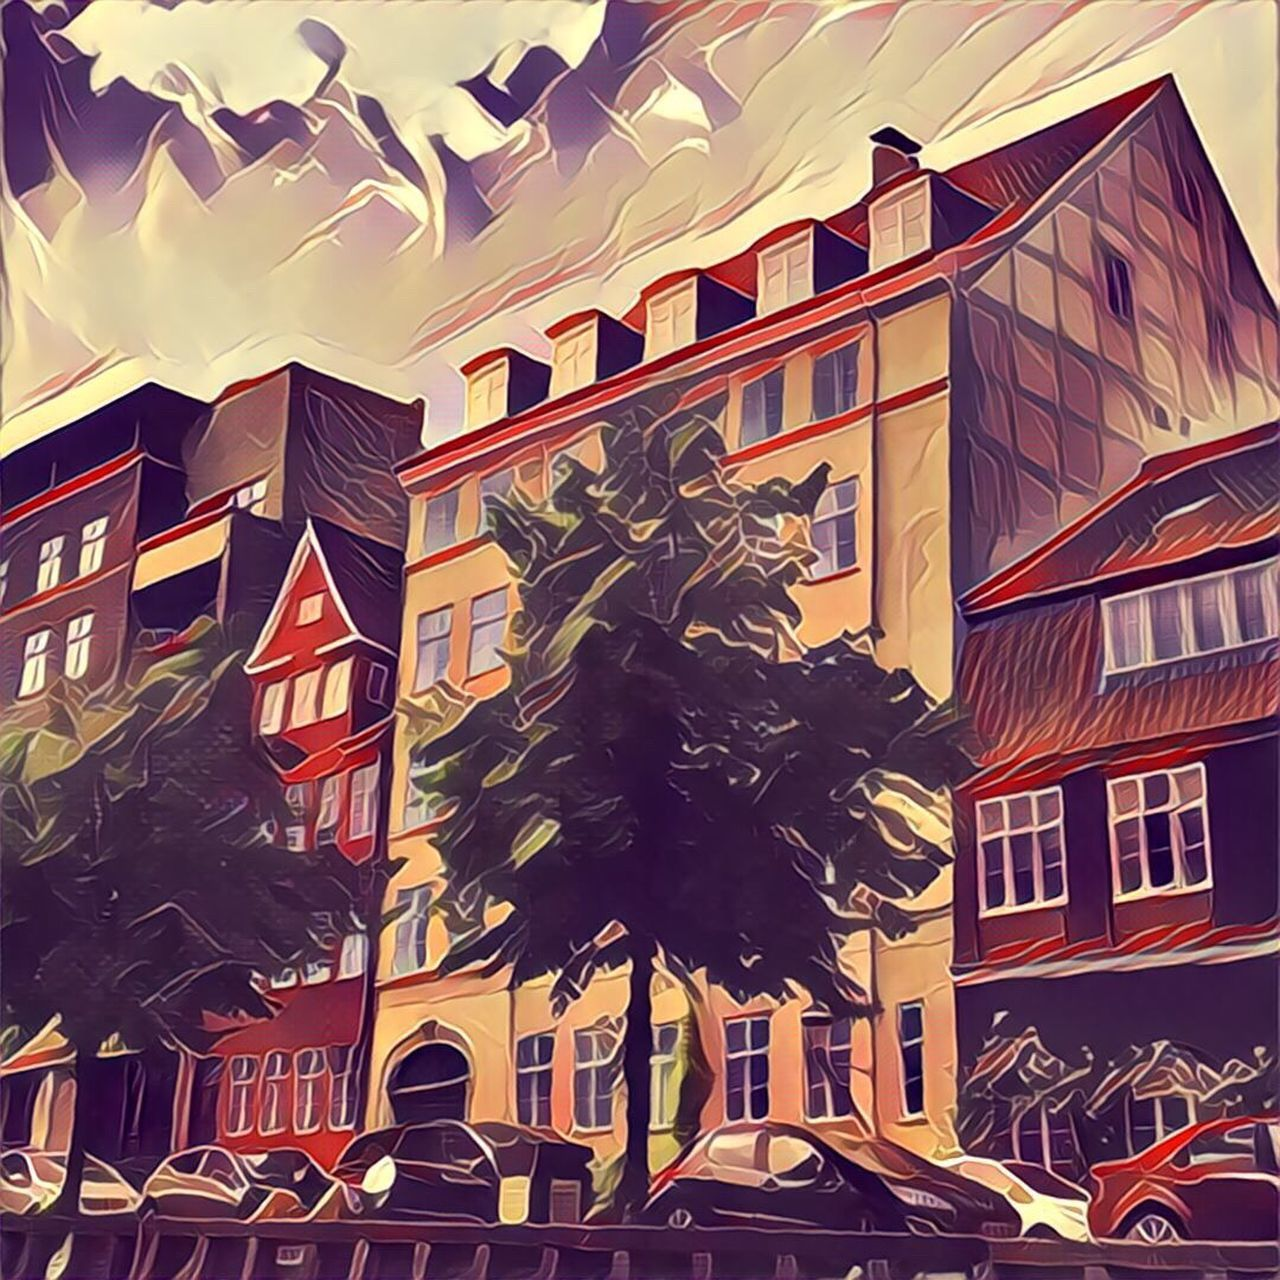 Copenhagen, Denmark Prisma Album Prisma Photo Prisma Effect Prisma Application Prisma_Filter Prisma_app Prisma_Labs Prisma Prisma_app Copenhagen_Prisma Copenhagen, Denmark Prisma Mononoke Prisma_Mononoke Prisma_Filter Prisma Mononoke Mononoke Mononoke Photo Mononoke Effect